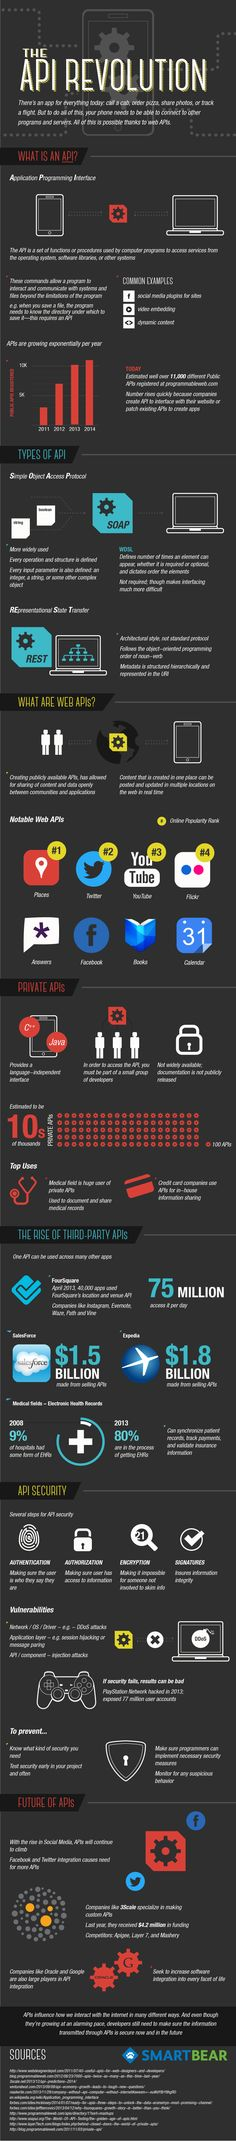 TECH - The Rise Of #API - #infographic #tech.